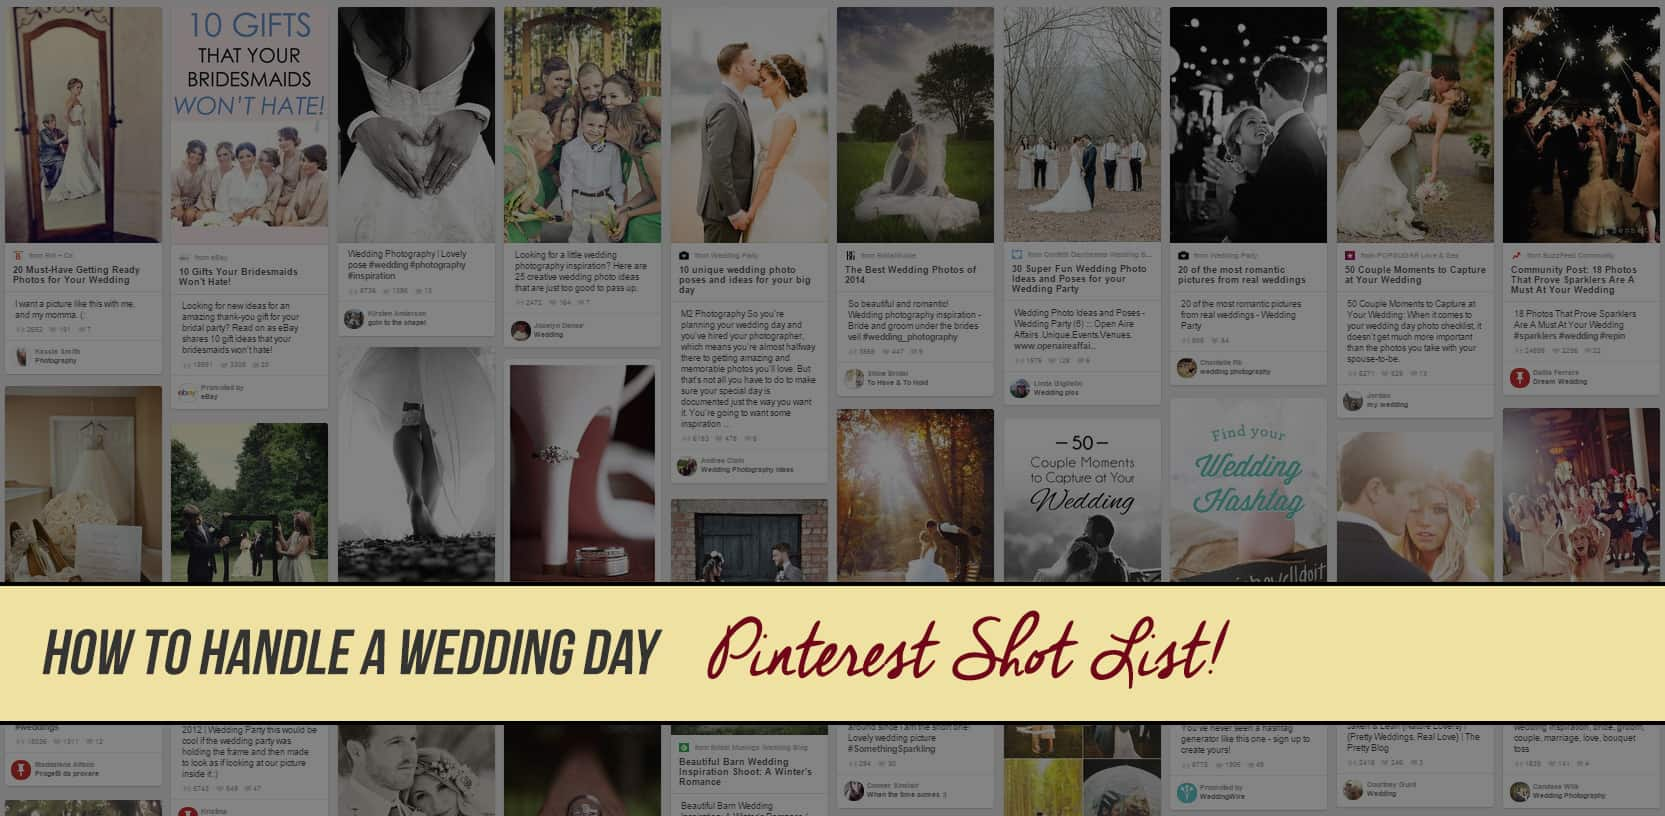 How to Handle a Wedding Day Pinterest Shot List!